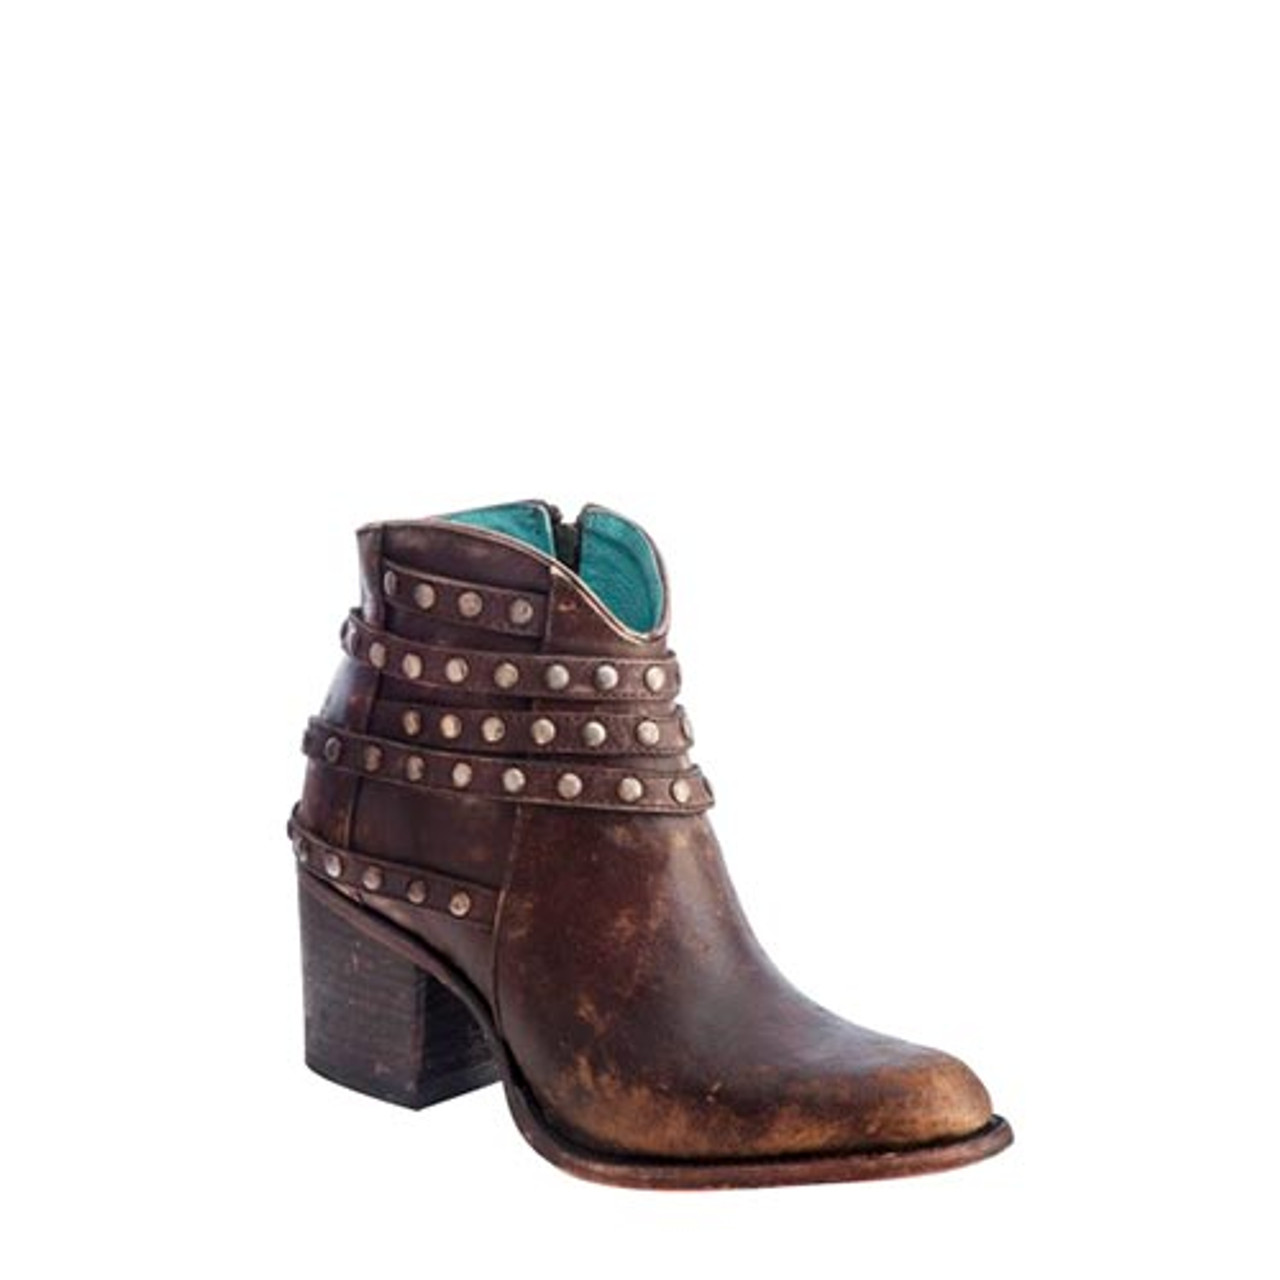 701e45f40ae Corral Women's Boots - Studded Strap Ankle Boot - Round Toe